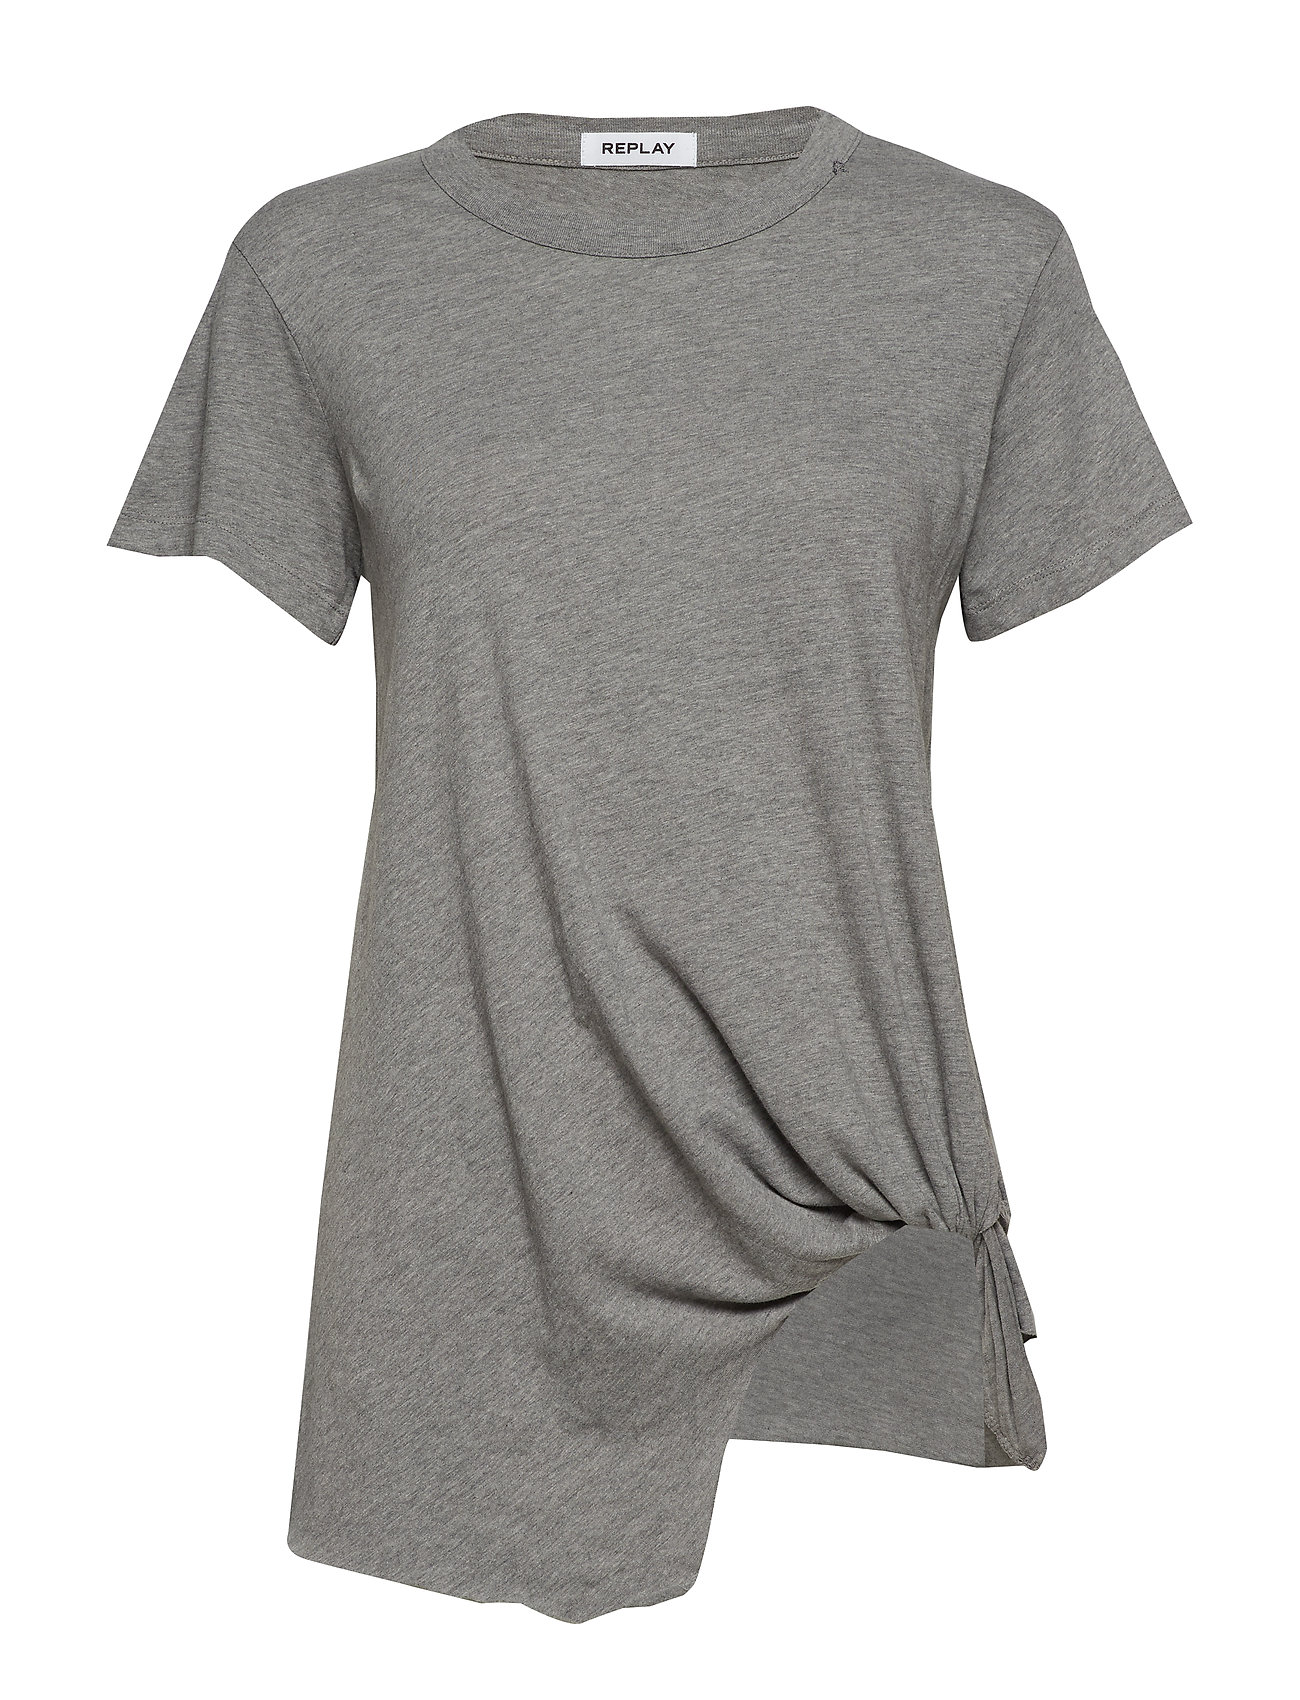 Replay T-Shirt - MEDIUM GREY MELANGE